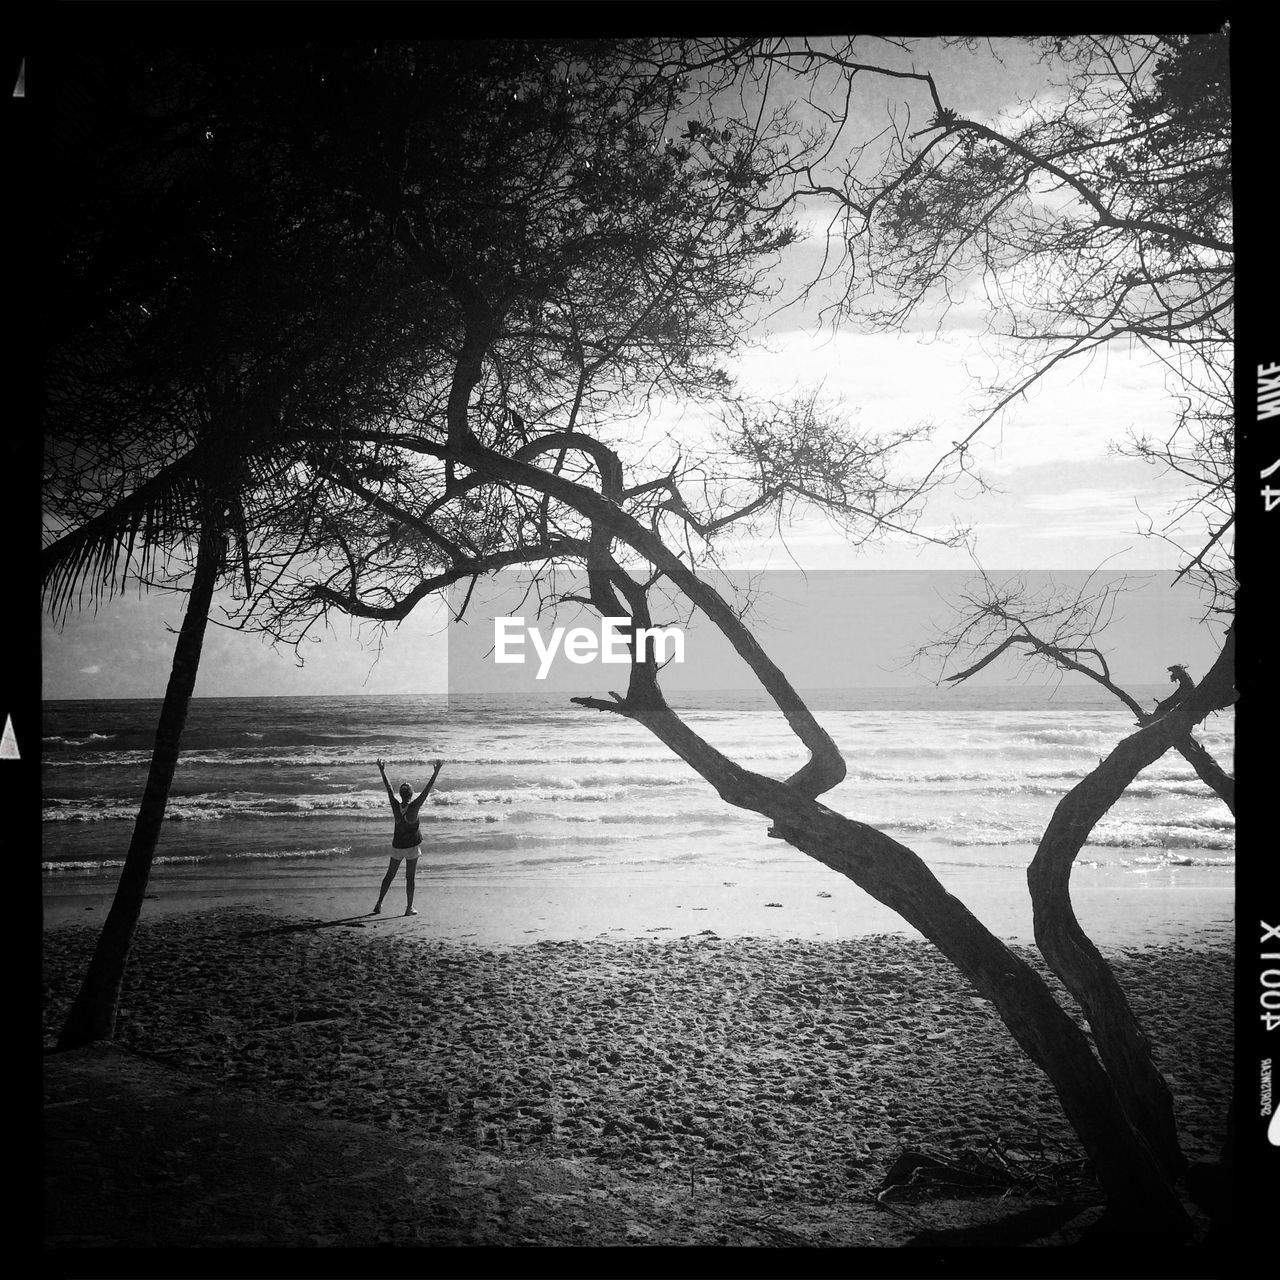 tree, water, sea, nature, tranquil scene, tranquility, one person, scenics, silhouette, beauty in nature, outdoors, standing, tree trunk, real people, beach, day, branch, horizon over water, rope swing, lone, full length, sky, one man only, people